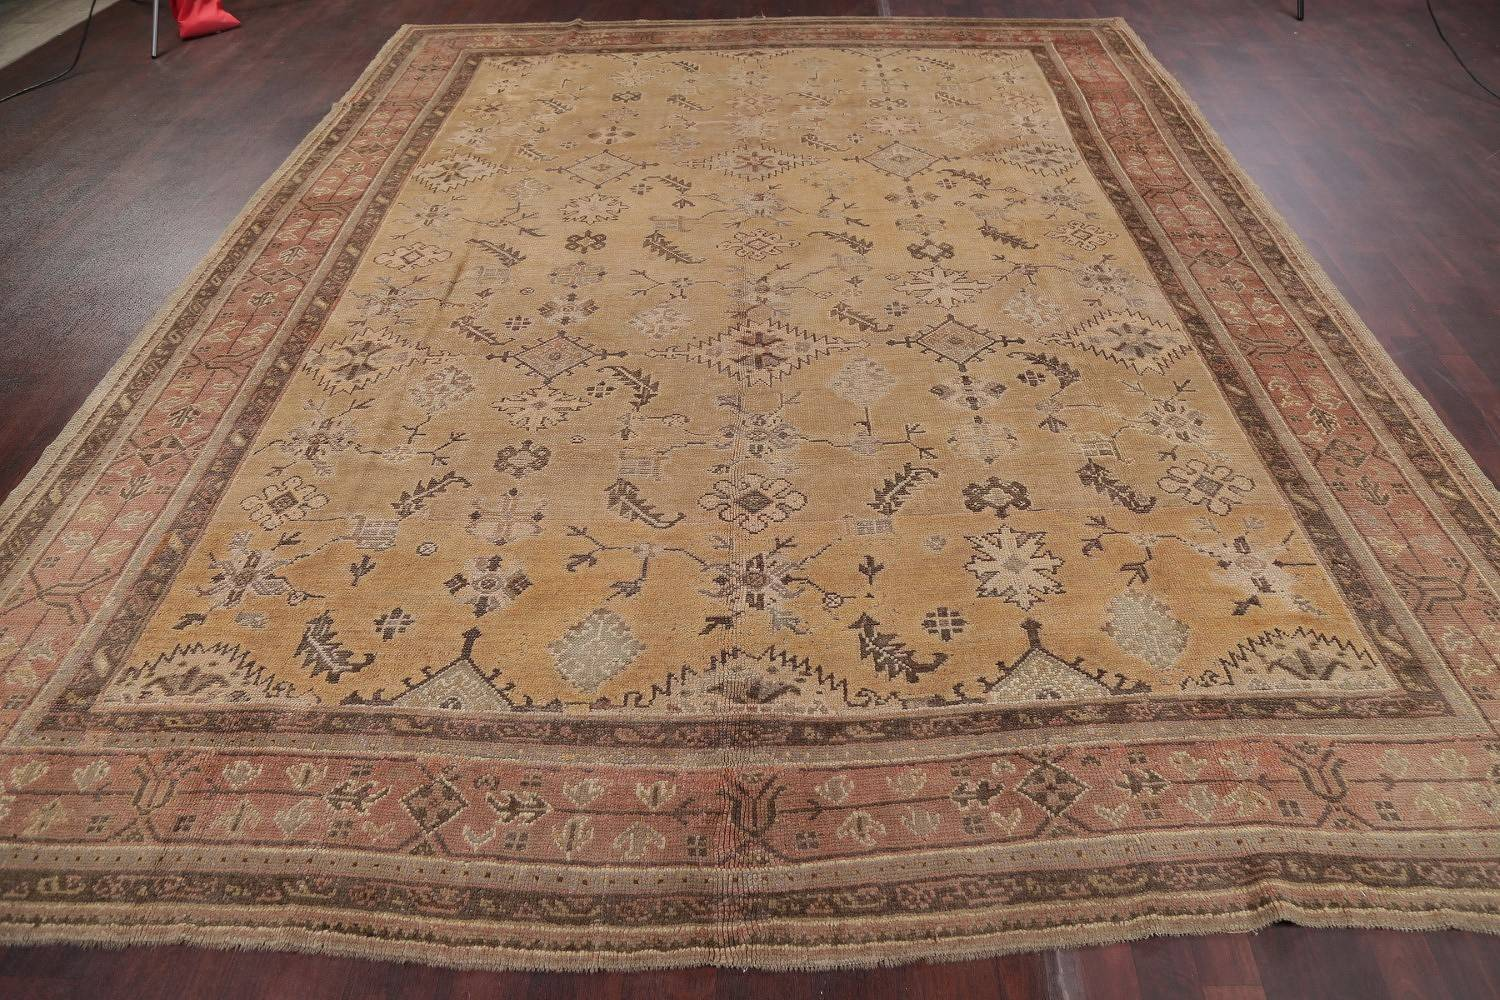 Pre-1900 Antique All-Over Geometric Muted Color Oushak Turkish Area Rug 10x13 image 19